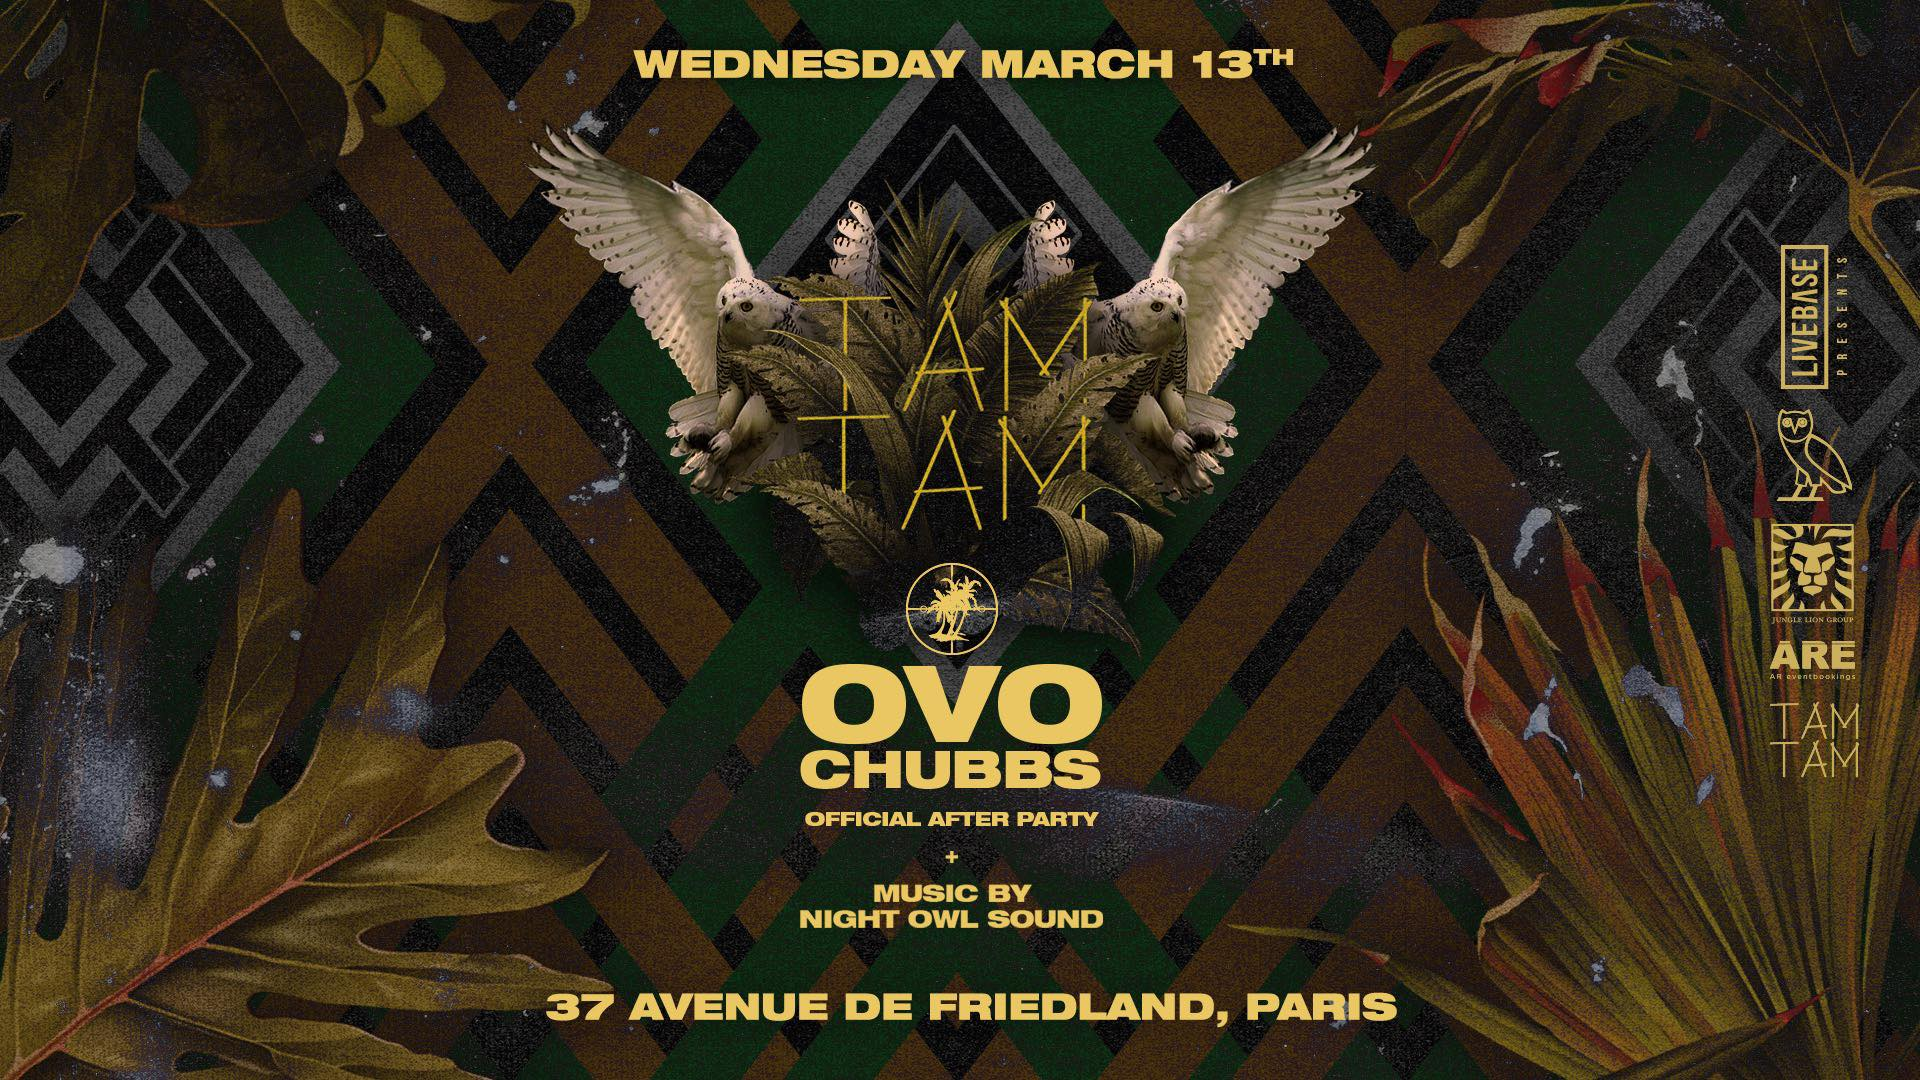 "Mercredi 13/03 x TAM TAM ""OVO Chubbs"" AFTER PARTY x BOUM BOUM"